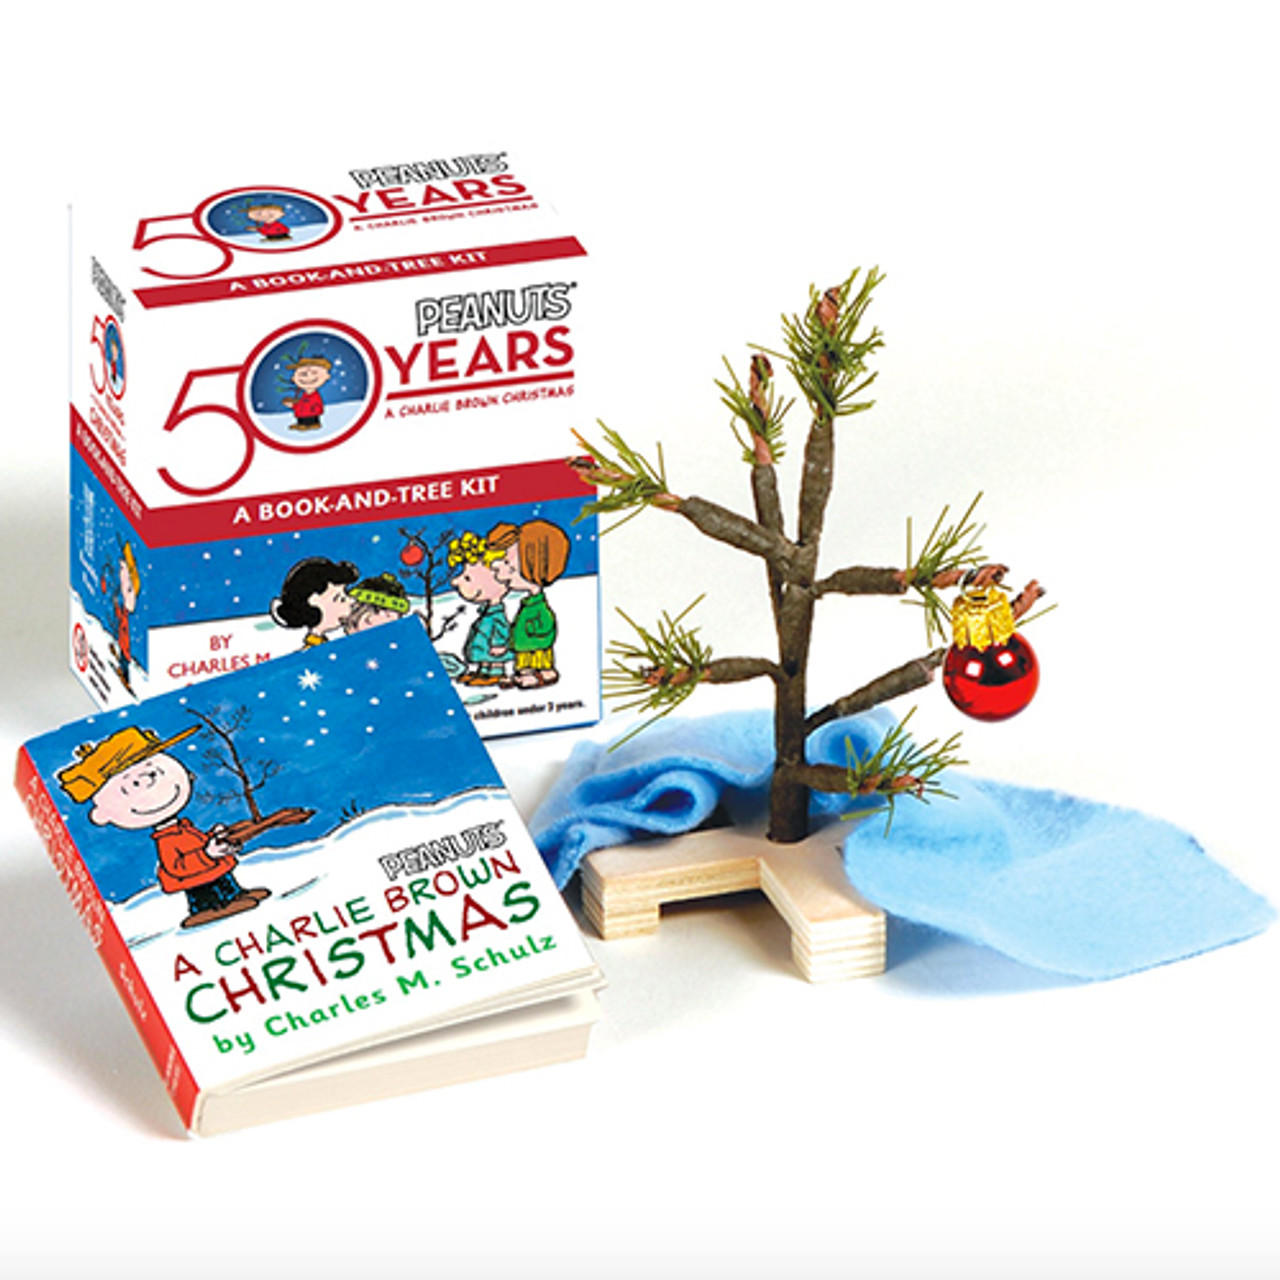 A Charlie Brown Christmas Book.A Charlie Brown Christmas Book And Tree Mini Kit